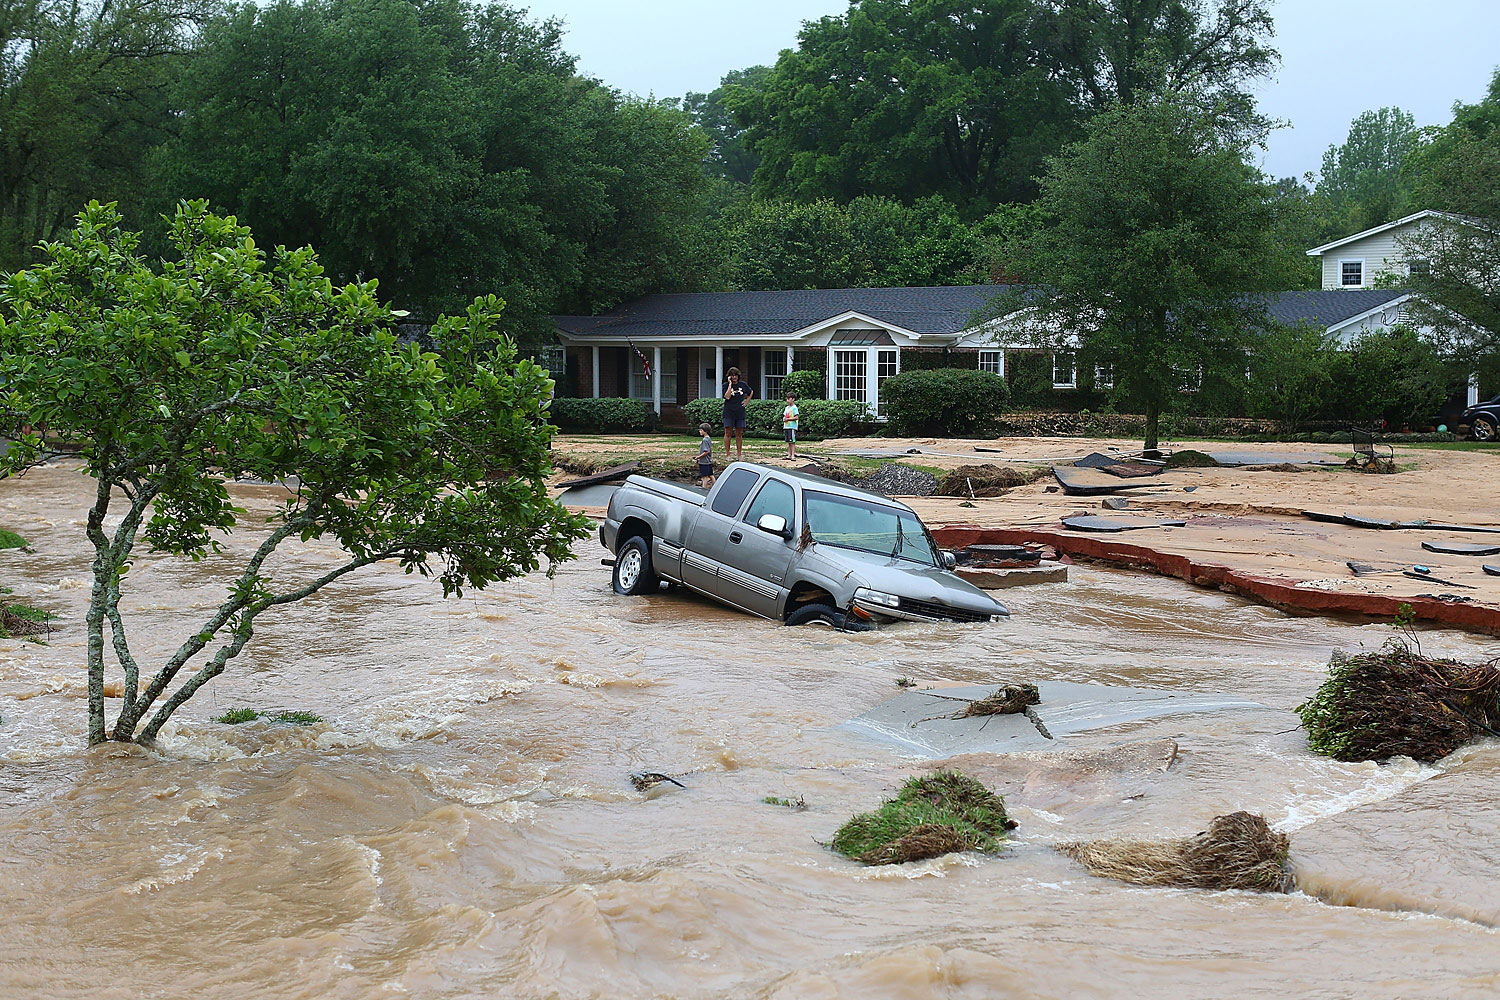 A truck is stuck in the middle of flooded Piedmont Street in the Cordova Park neighborhood after it washed out due to heavy rains on April 30, 2014 in Pensacola, Fla.